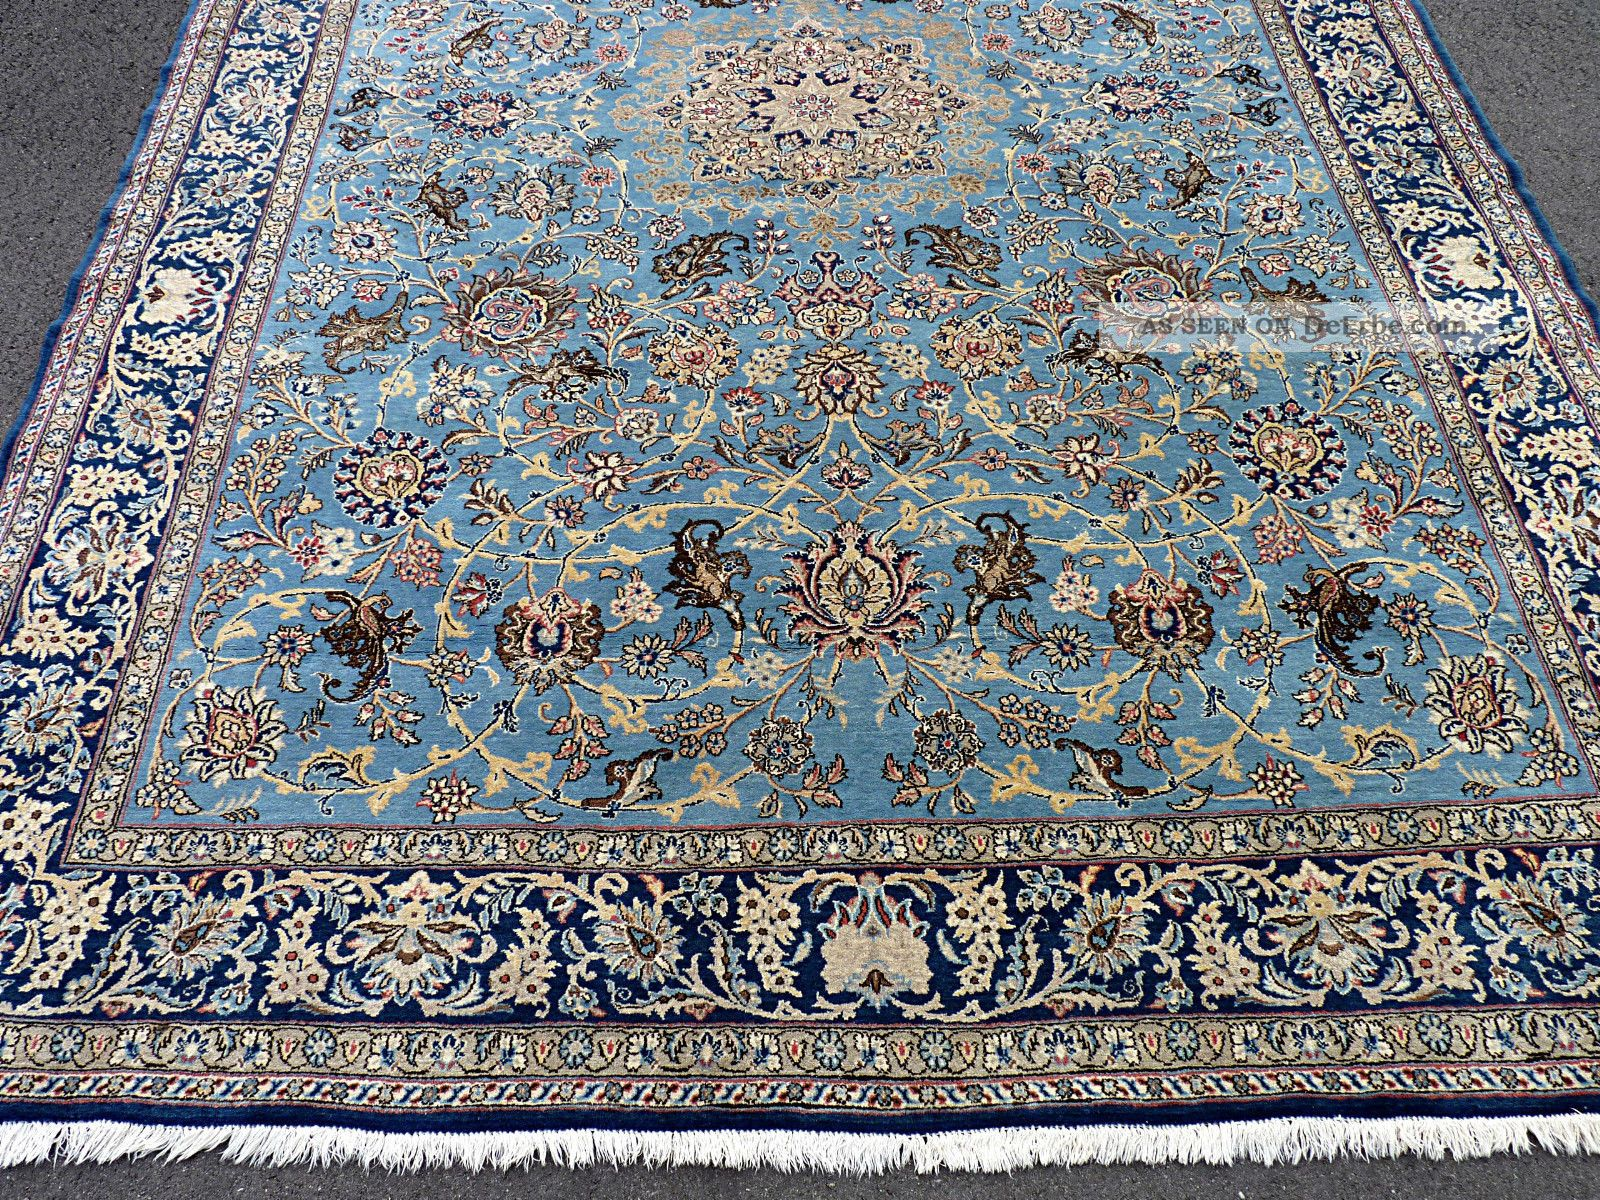 orient teppich perserteppich oriental rug tapis persan ca 350x350 11 5 39 x8 2. Black Bedroom Furniture Sets. Home Design Ideas